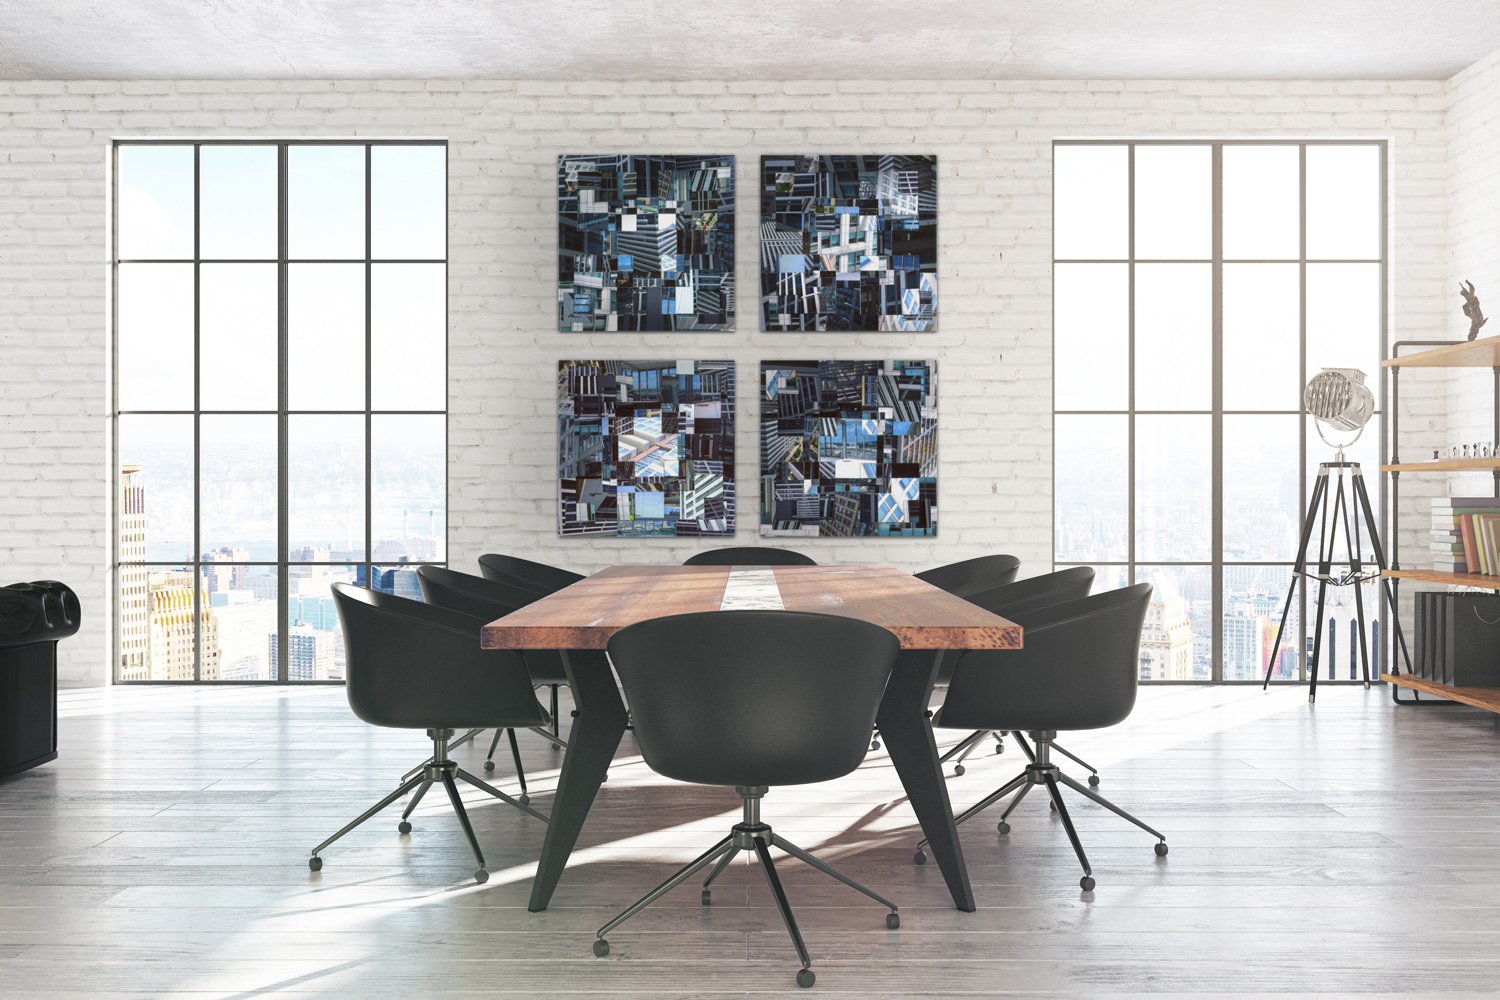 """MASSING 1-4   IN QUAD FORMATION, ACRYLIC MOUNTED PRINTS FROM TRANSPARENCY FILM, 52"""" x 52"""" [4 PIECES 24"""" x 24""""]"""